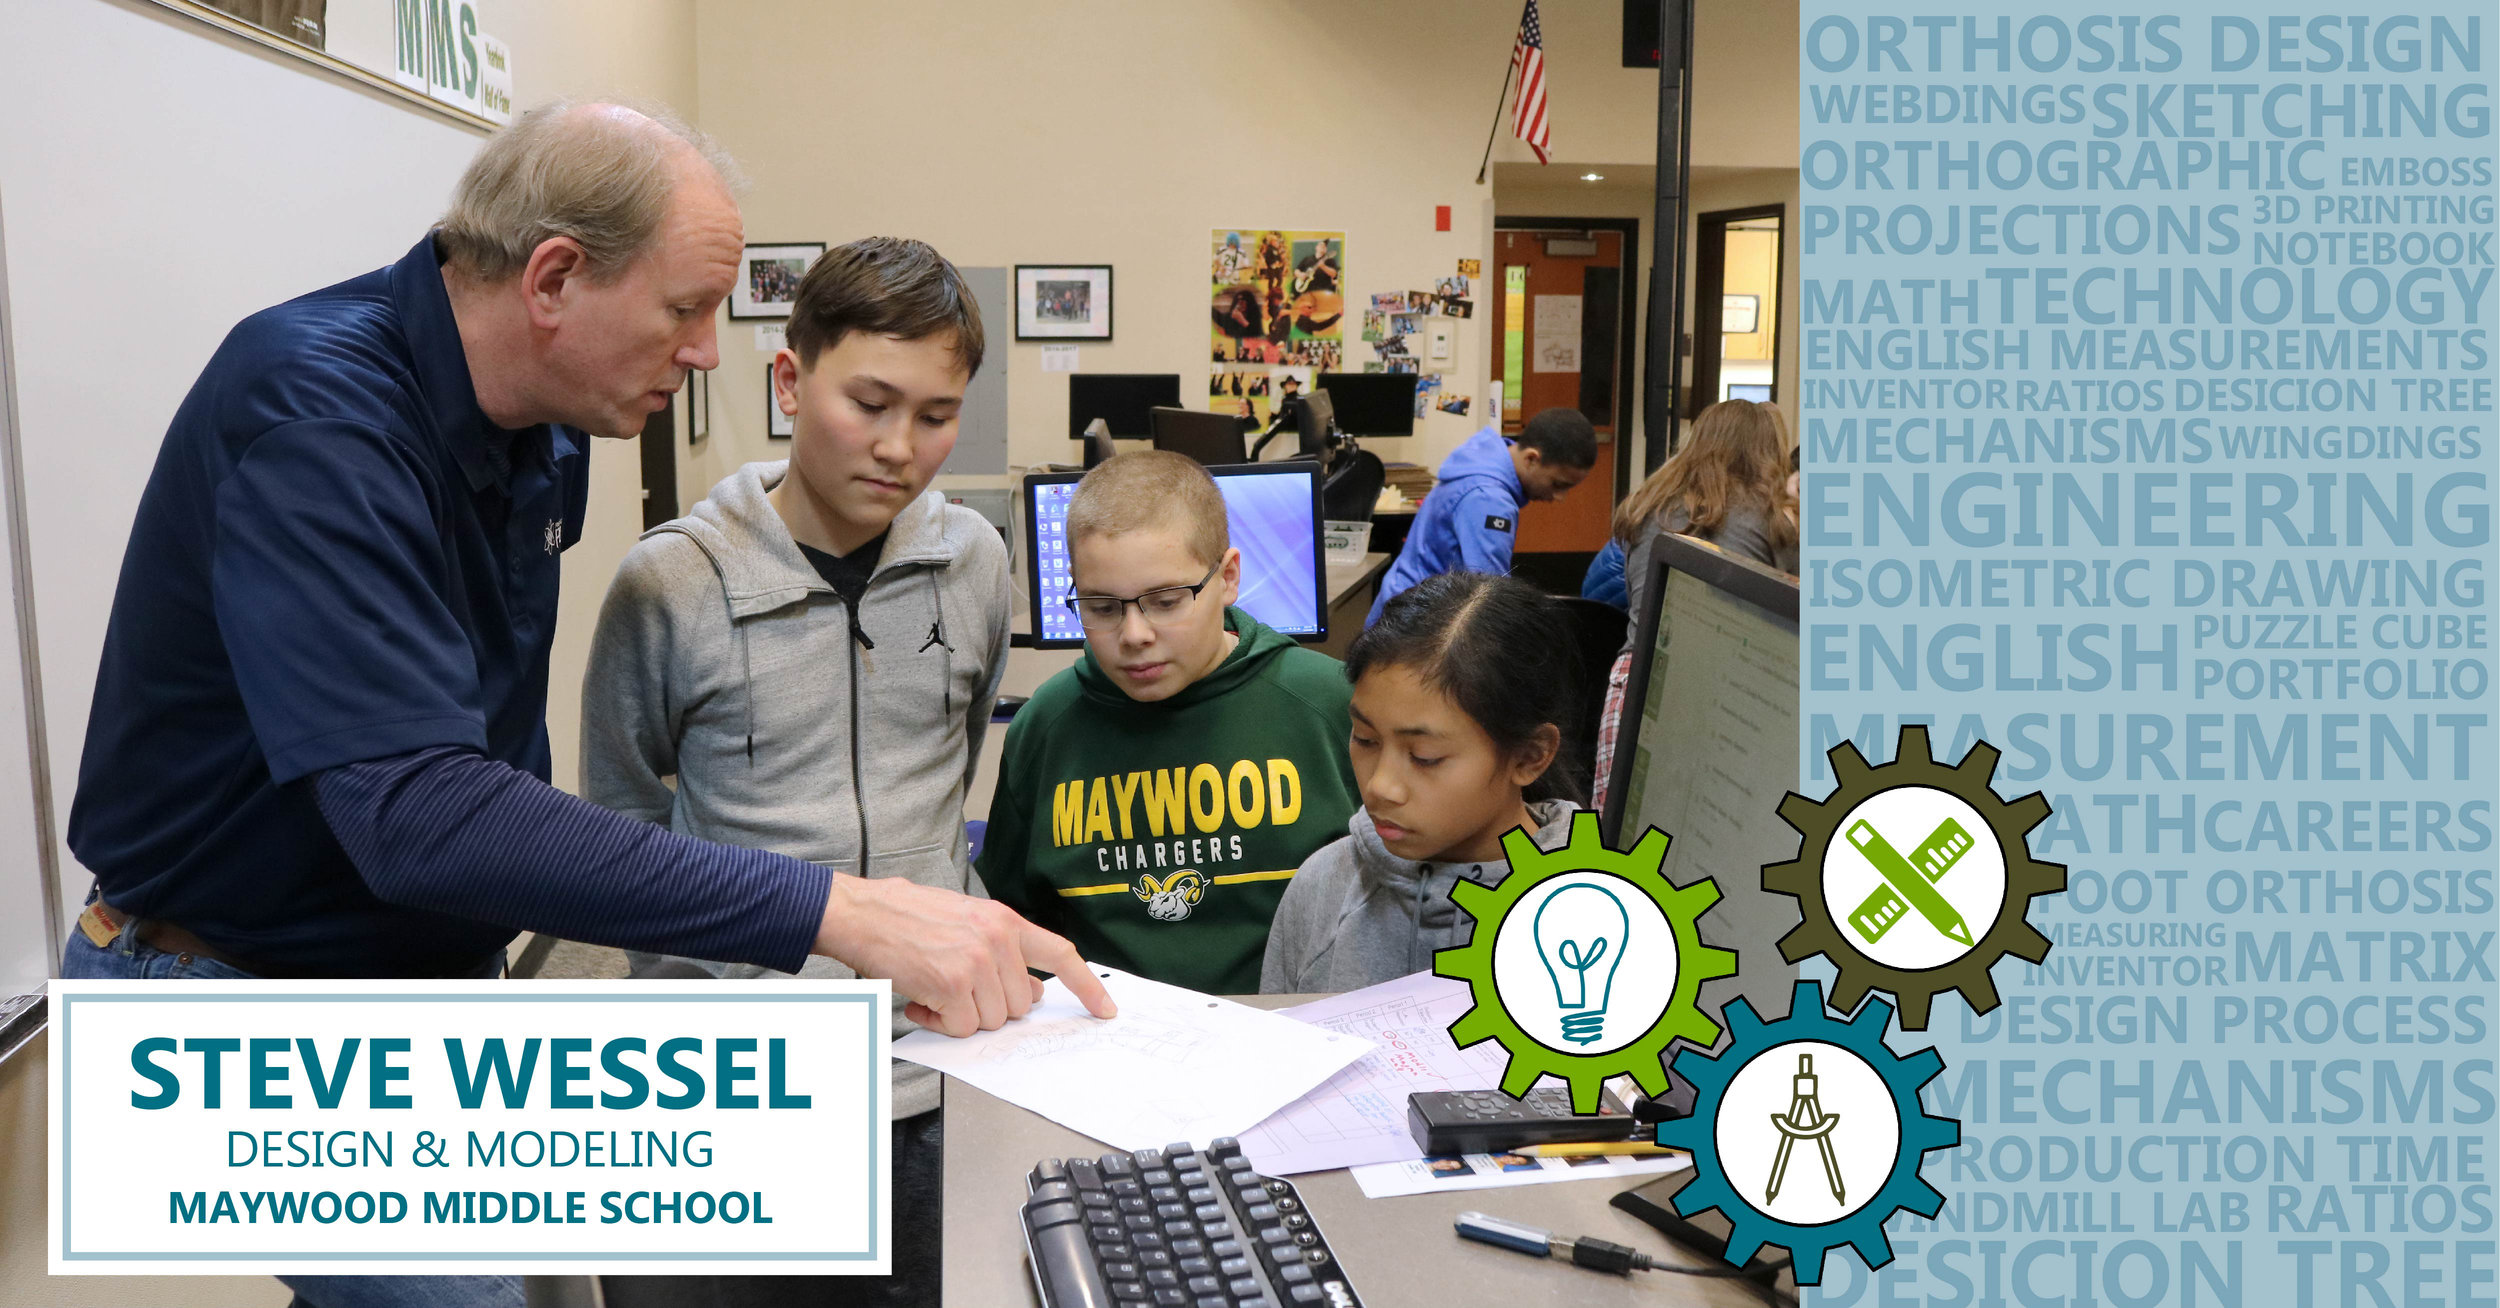 Meet Mr. Wessel, who teaches Design and Modeling at Maywood Middle School, as well as Automation and Robotics, and Yearbook. Mr. Wessel's Design and Modeling class, offered to 7th and 8th grade students, is part of Project Lead the Way (PLTW) – a nonprofit organization that provides a transformative learning experience for K-12 students and teachers across the United States.  The course aims to address the interest and energy of middle school students while incorporating national standards in mathematics, science, and technology. Through various, hands-on classroom projects students learn how to use engineering to solve everyday problems, emphasizing a team approach that promotes communication and collaboration. Students begin by learning what engineering is before exploring additional topics, including the design process, accurate measurement, sketching and dimensioning techniques, and designing for production.  For more information on PLTW please visit their website here:  https://www.pltw.org/